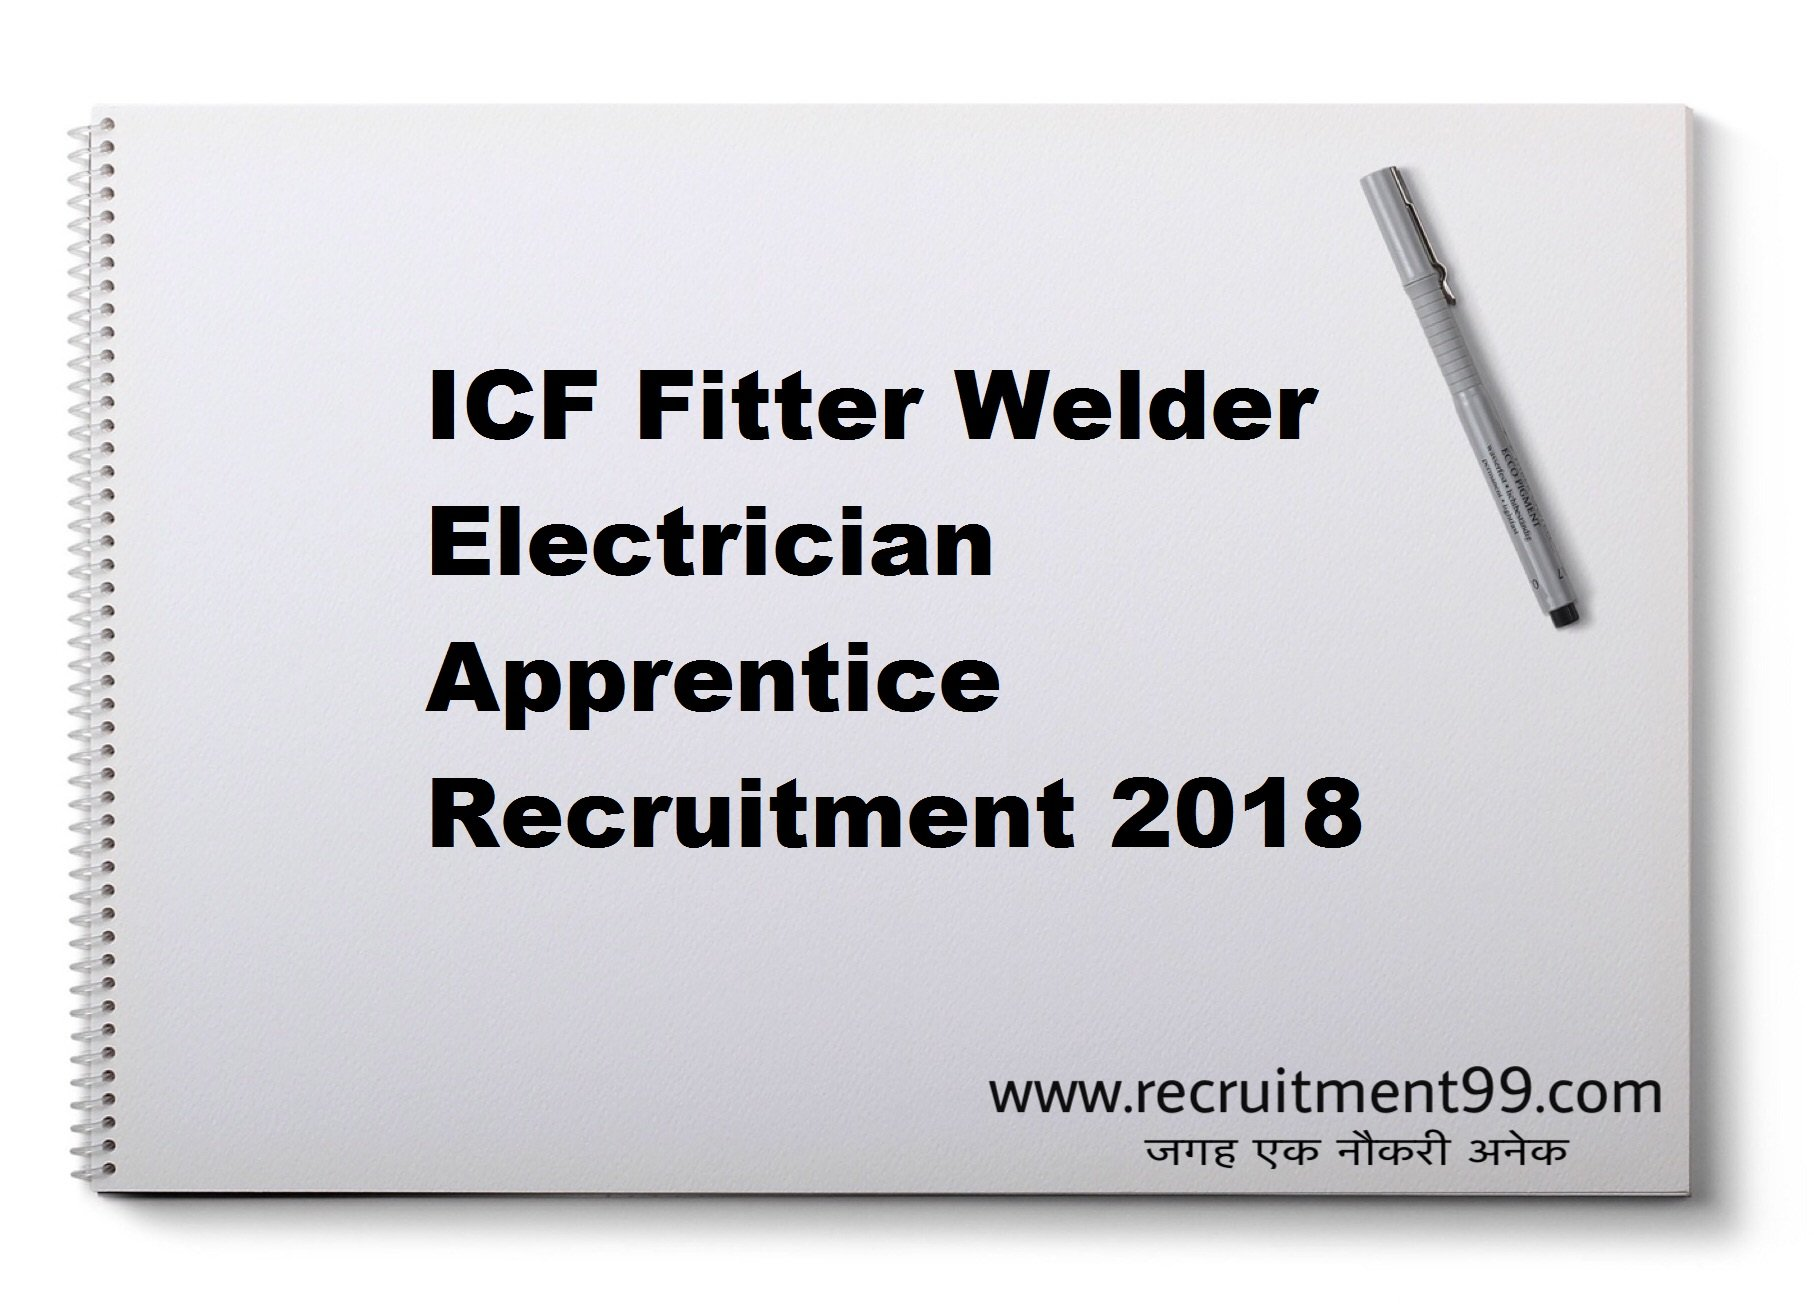 ICF Fitter Welder Electrician Apprentice Recruitment Admit Card Result 2018